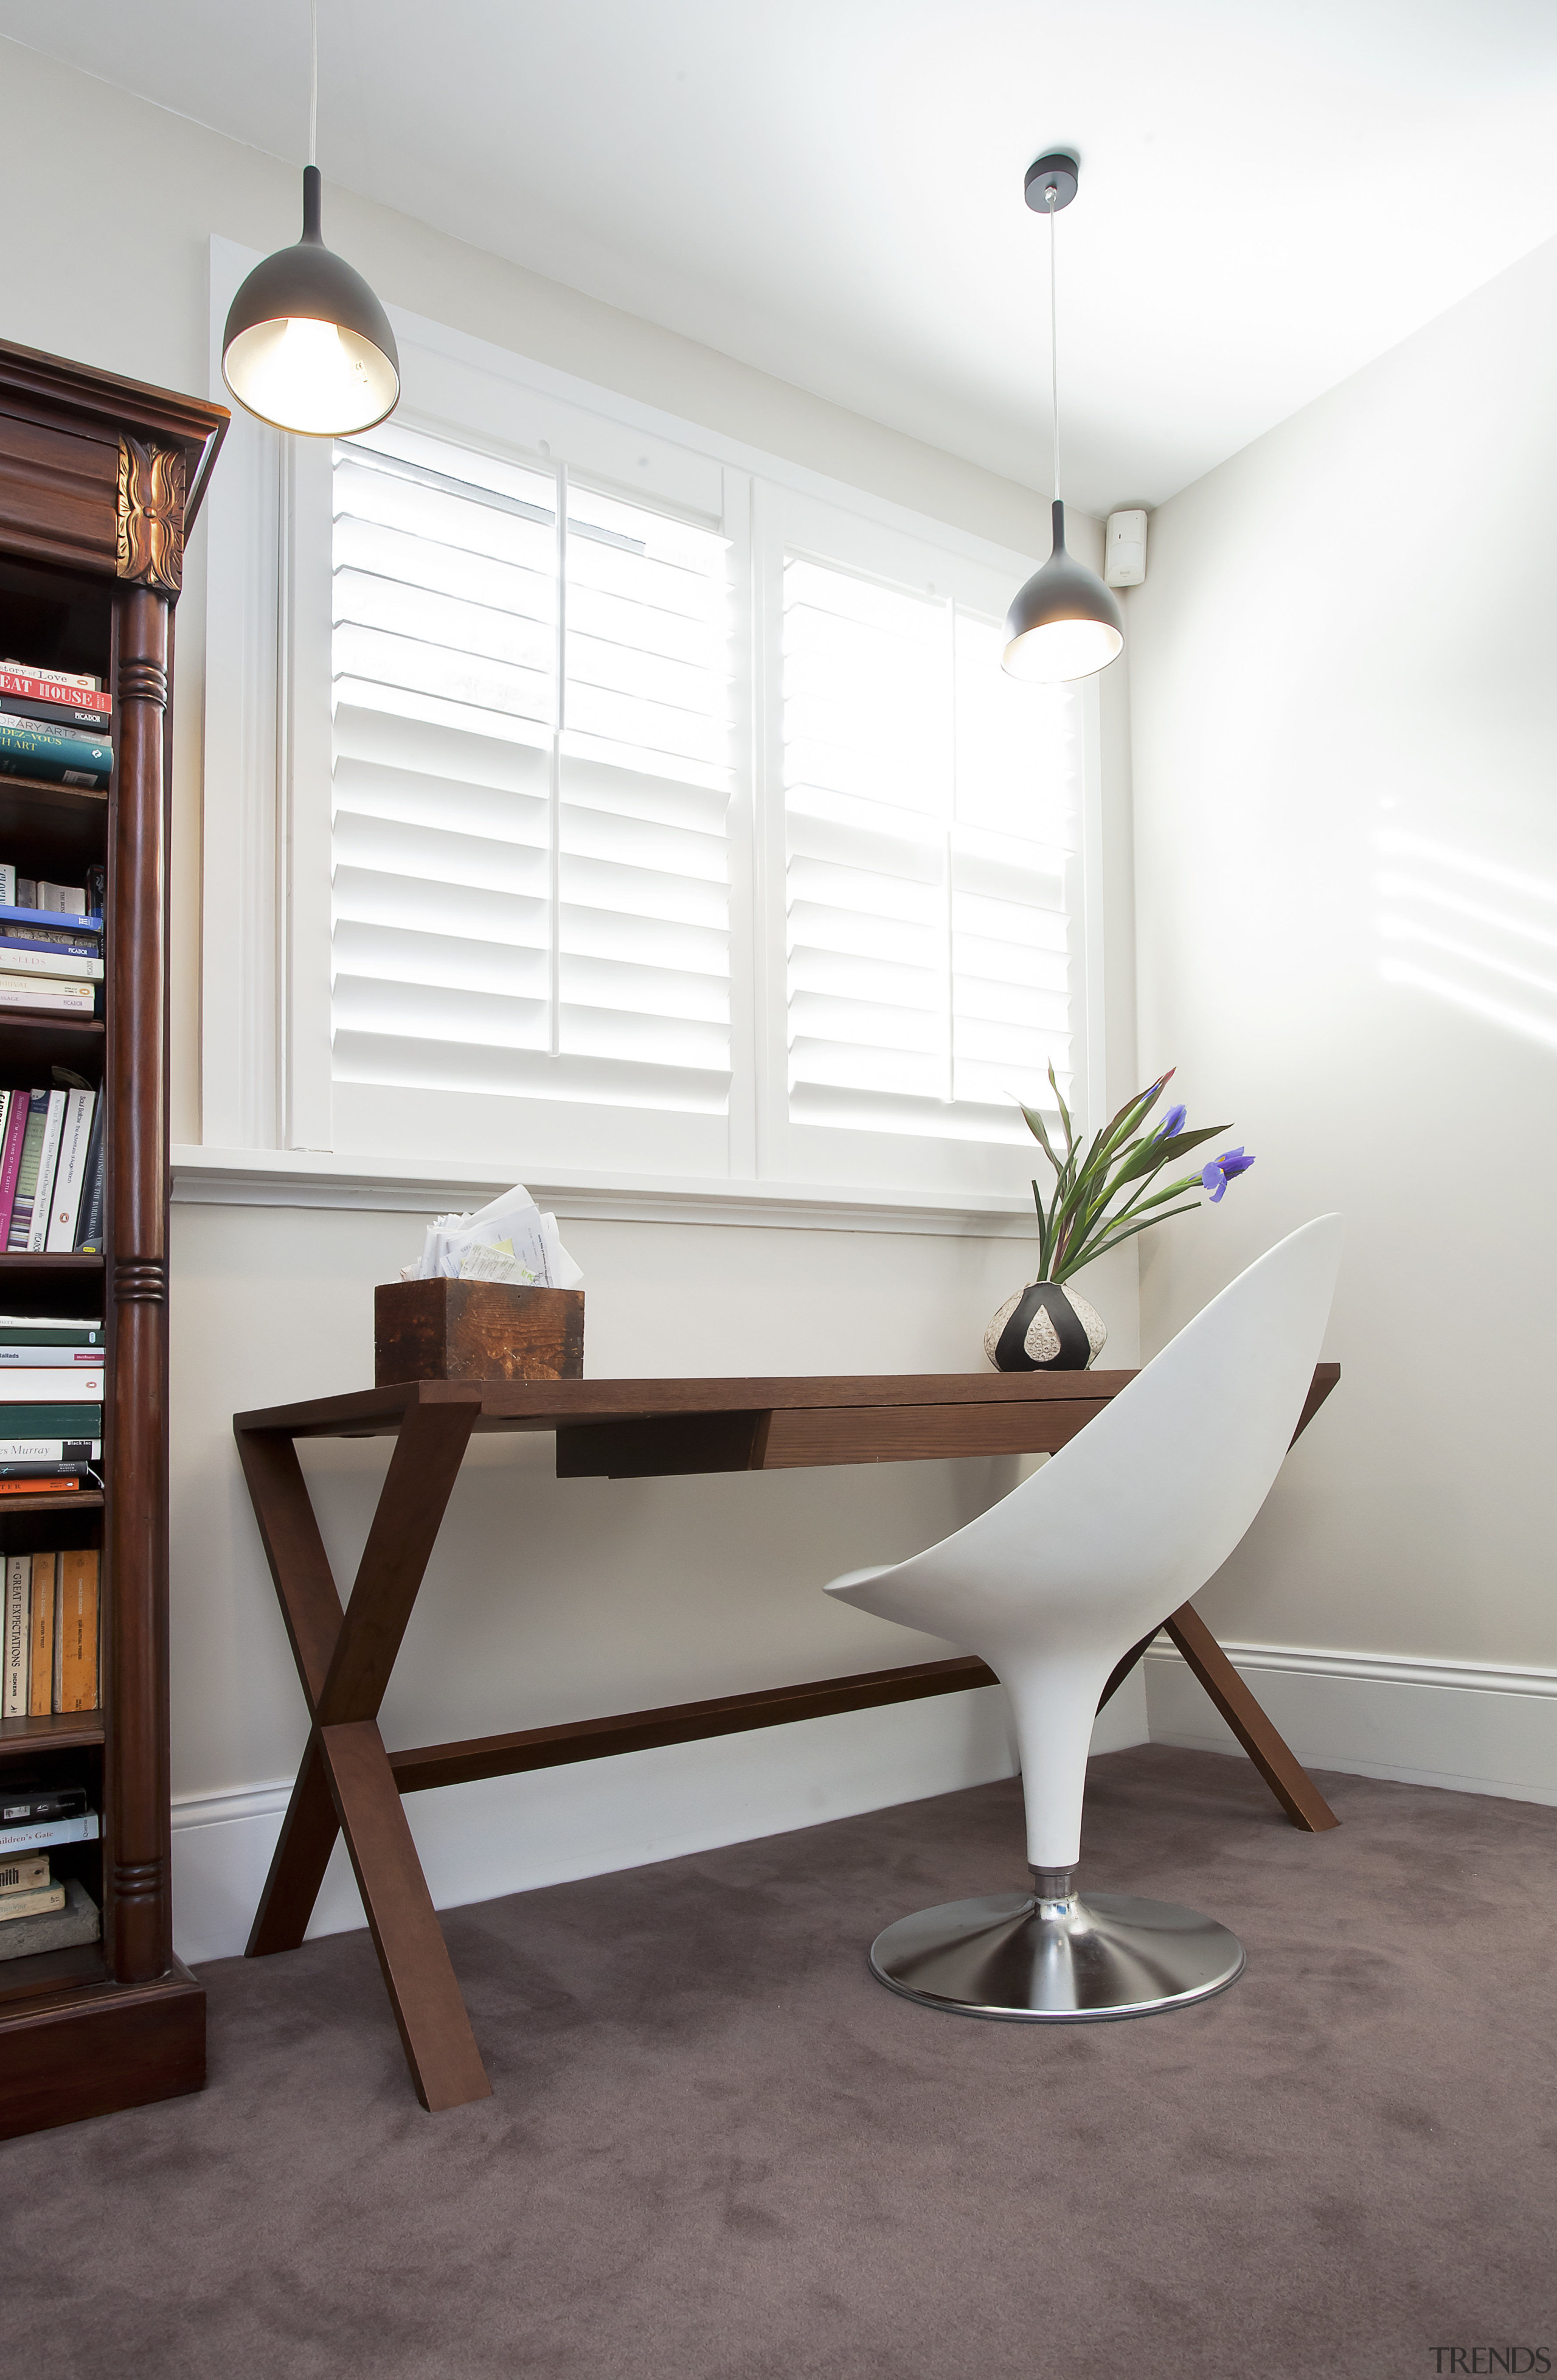 The modest work station in this study is ceiling, chair, desk, floor, furniture, home, interior design, product design, room, table, wall, wood, white, gray